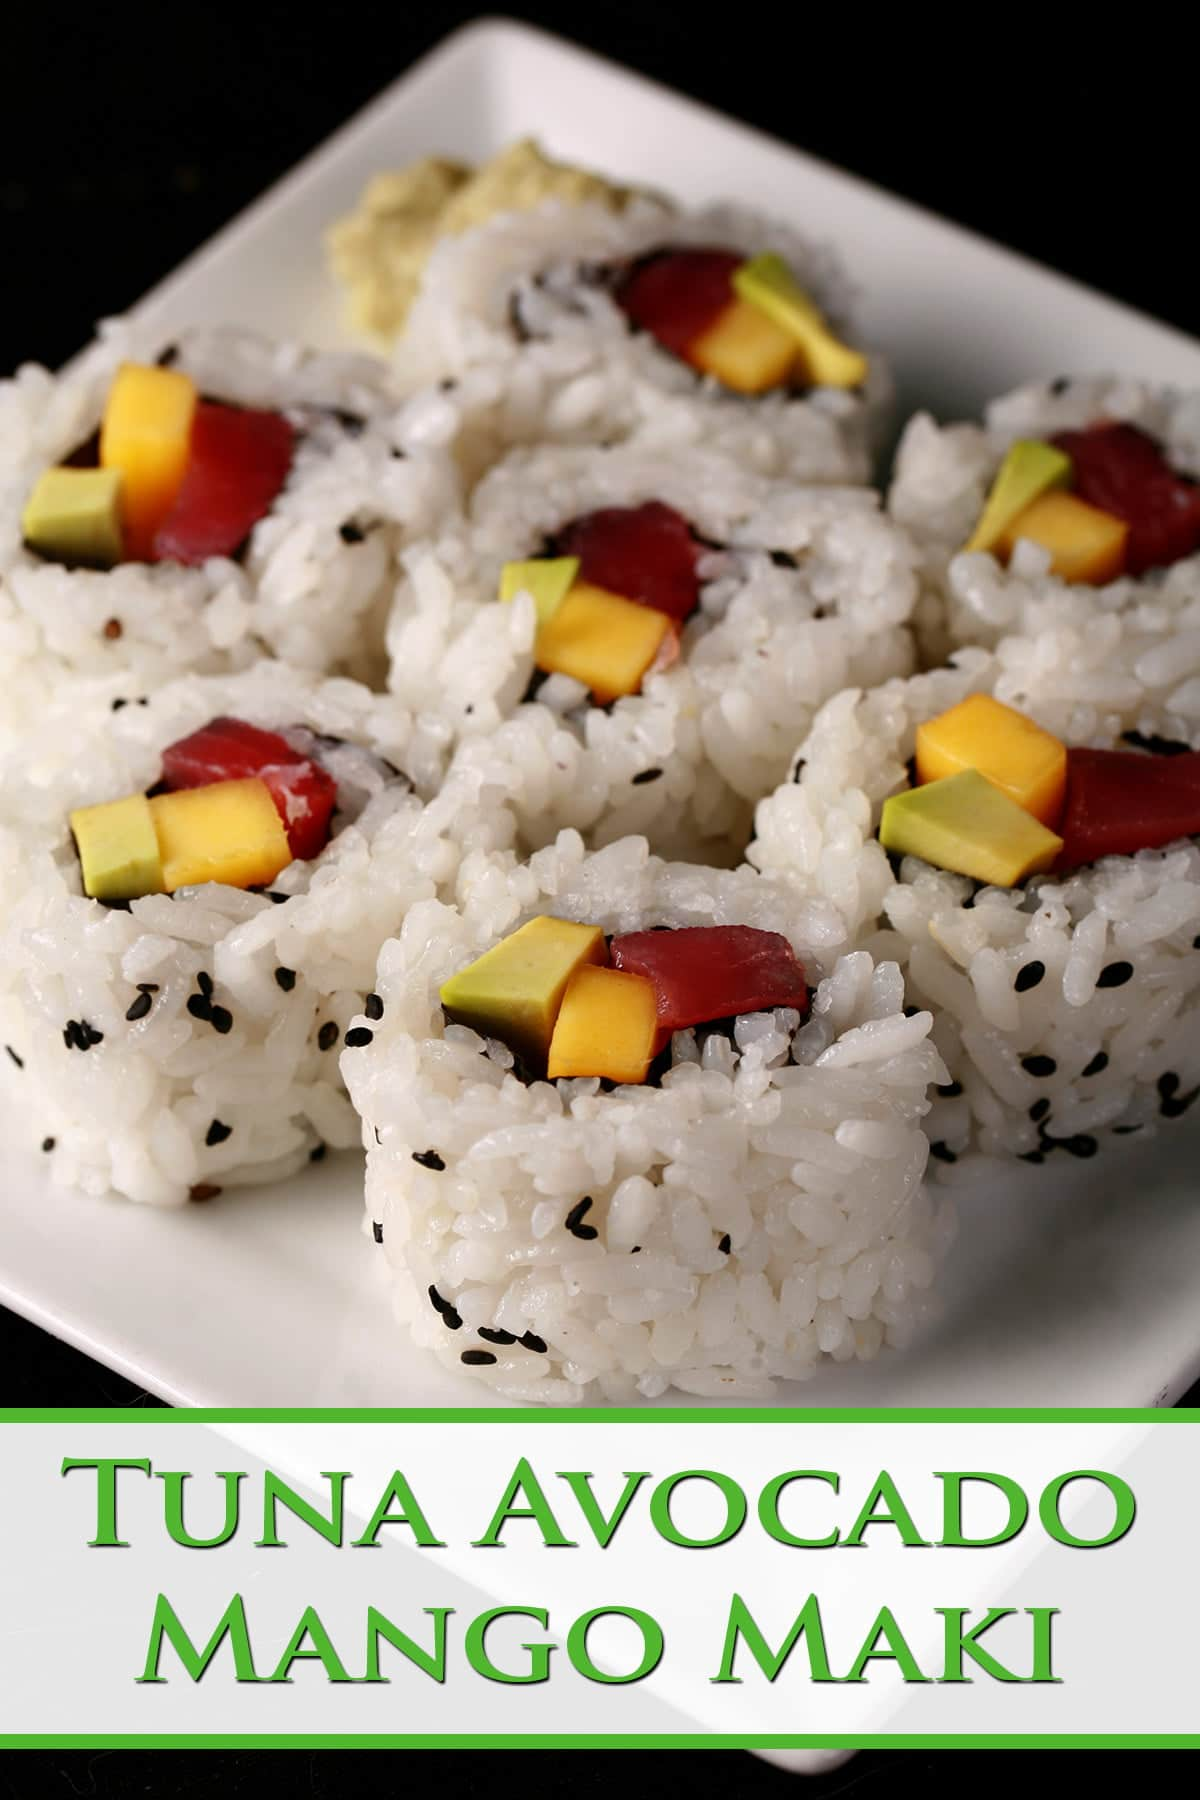 7 pieces of tuna avocado and mango maki roll slices, on a small white plate.